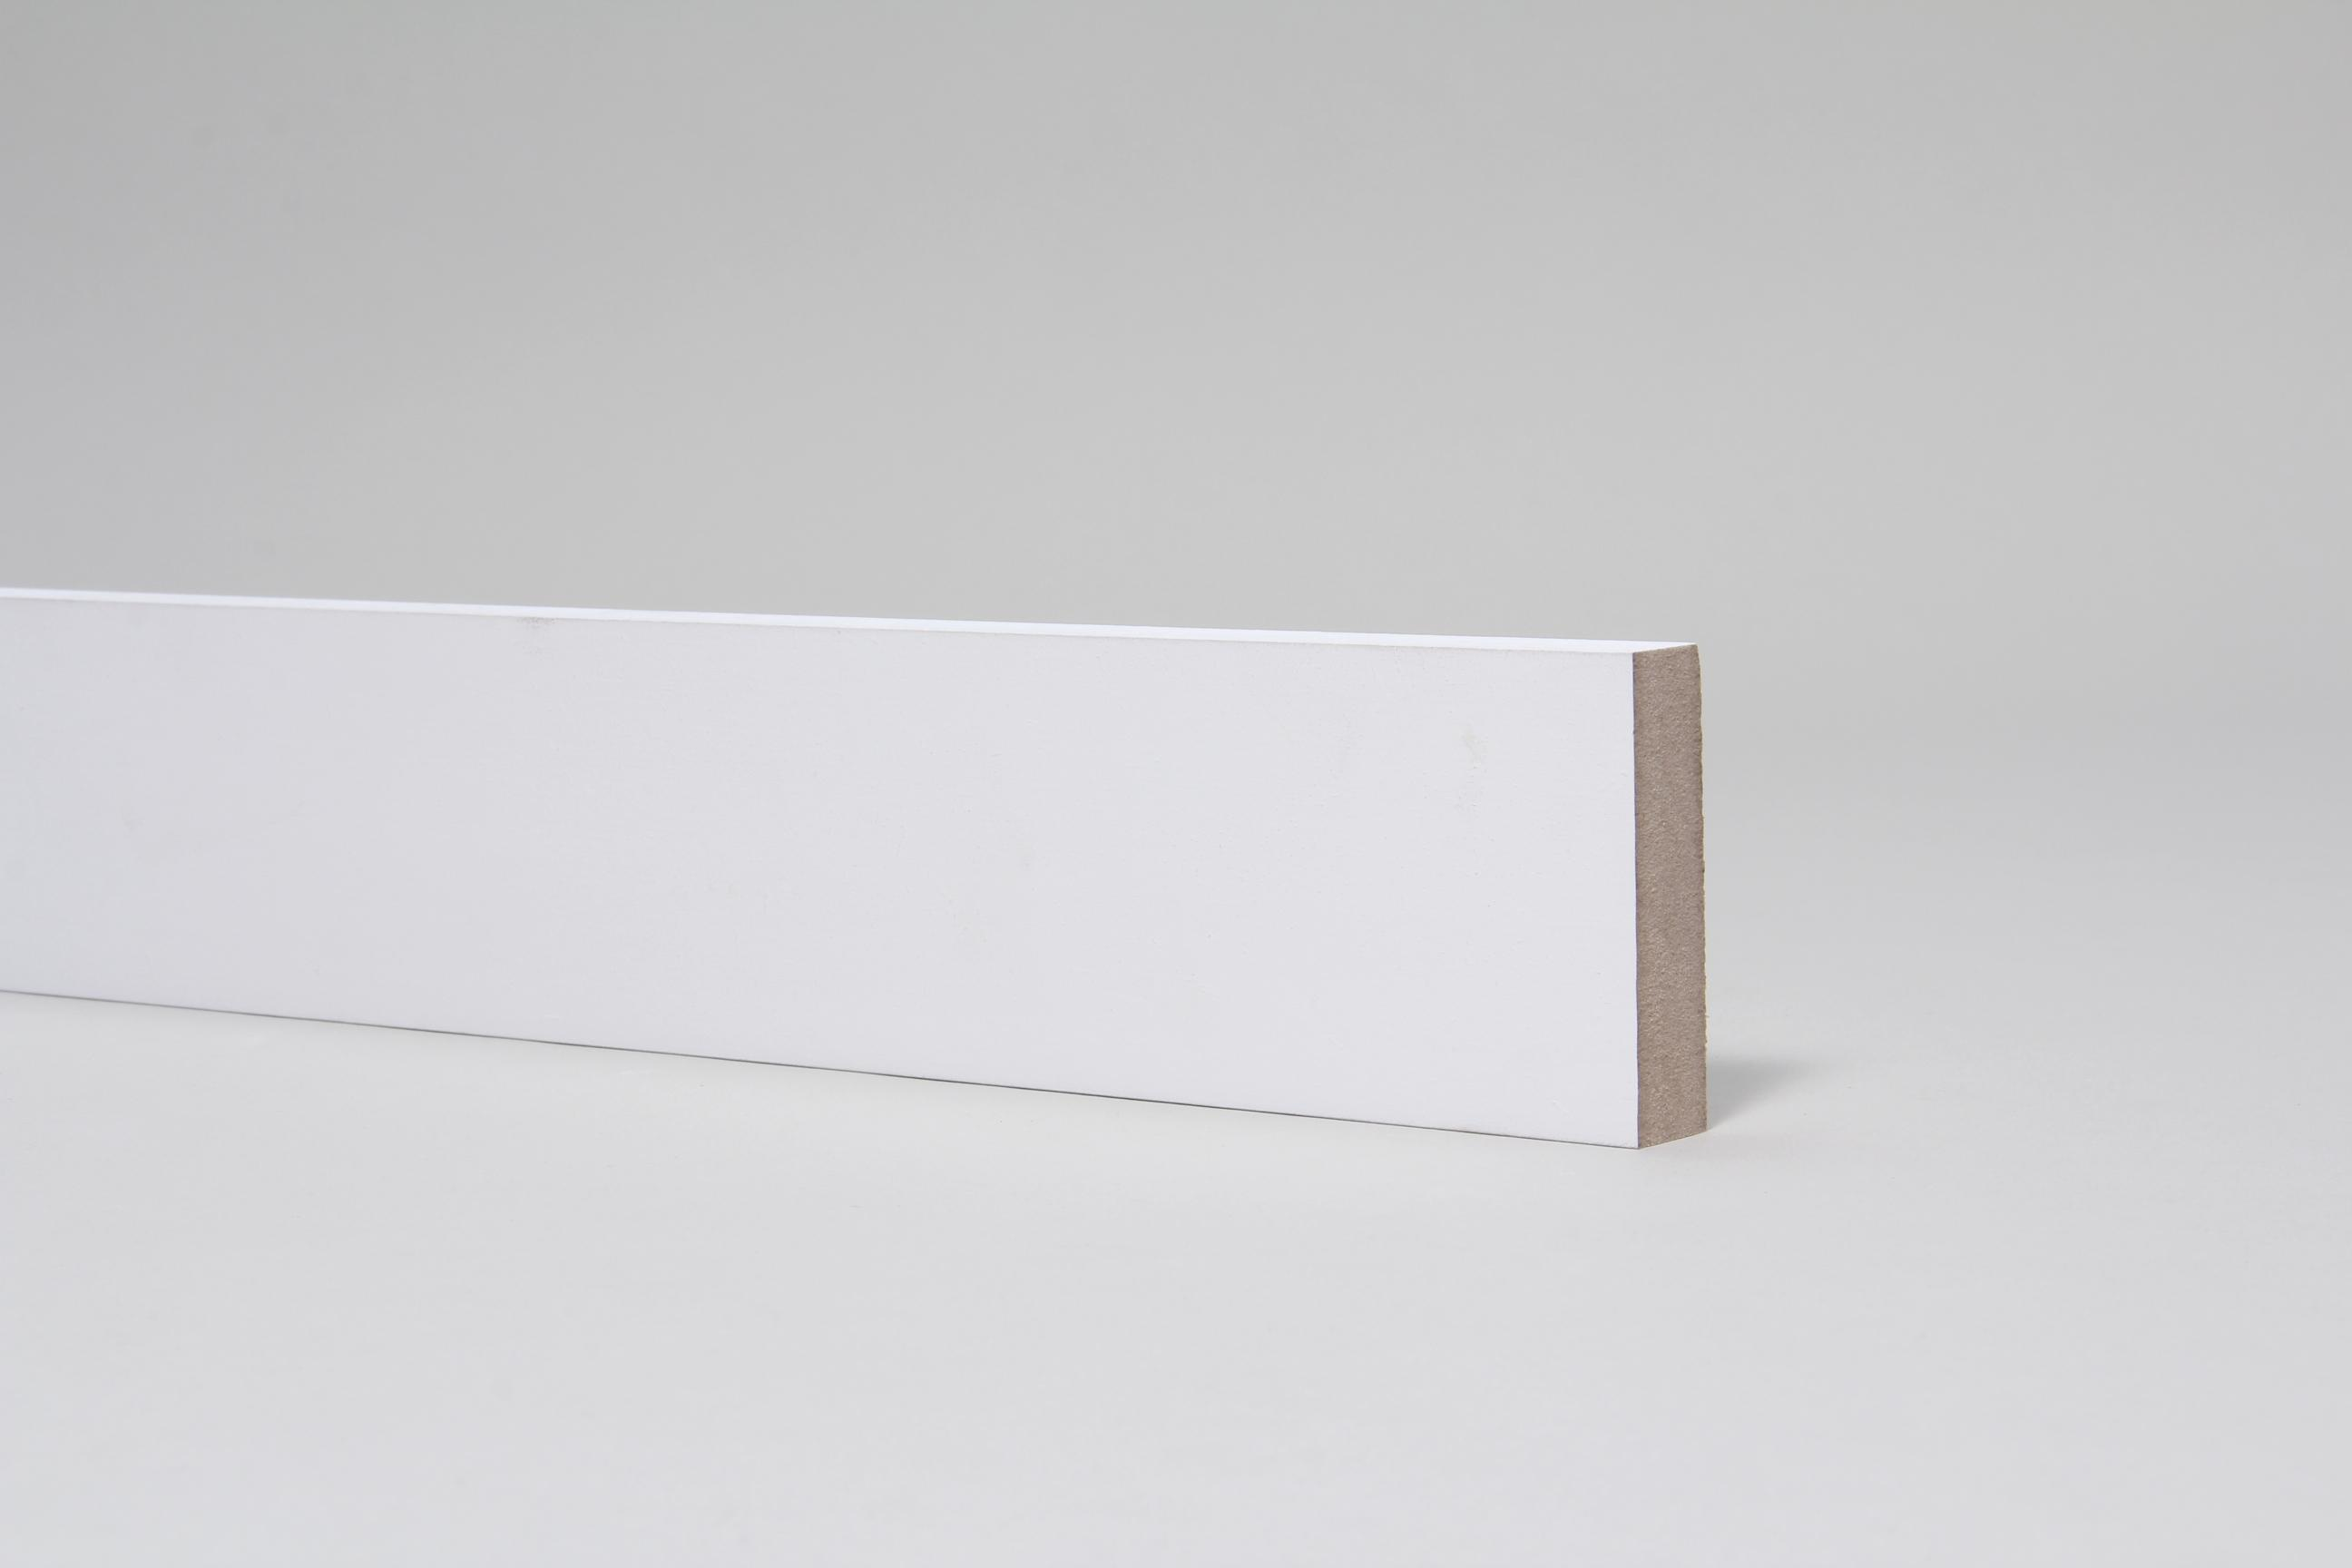 Plain Square Edge 18mm x 68mm Architrave Set Primed